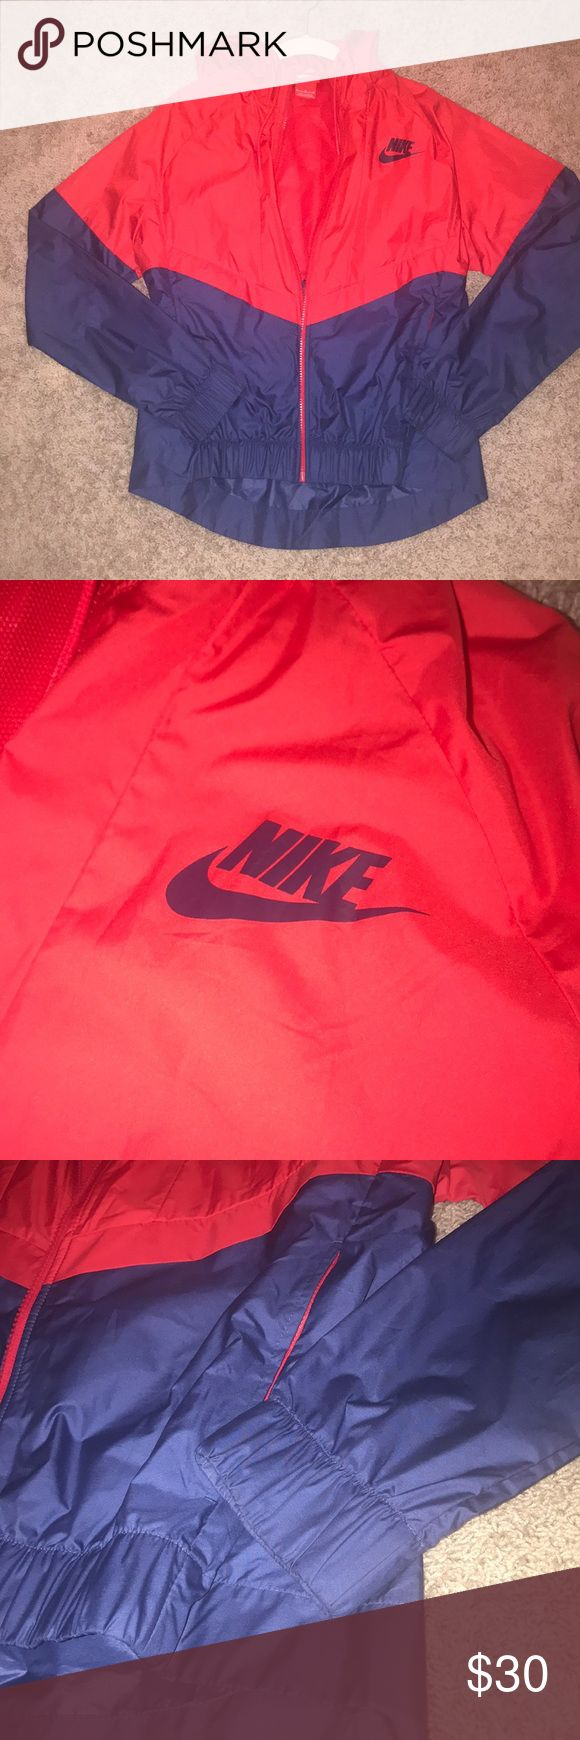 Nike Rain Jacket/Windbreaker Red and blue jacket! Could be worn in light rain or just as a workout jacket or windbreaker. I wore it once to go hiking in!  The back has a flap with mesh under it to be breathable! Has a hood Nike Jackets & Coats Utility Jackets